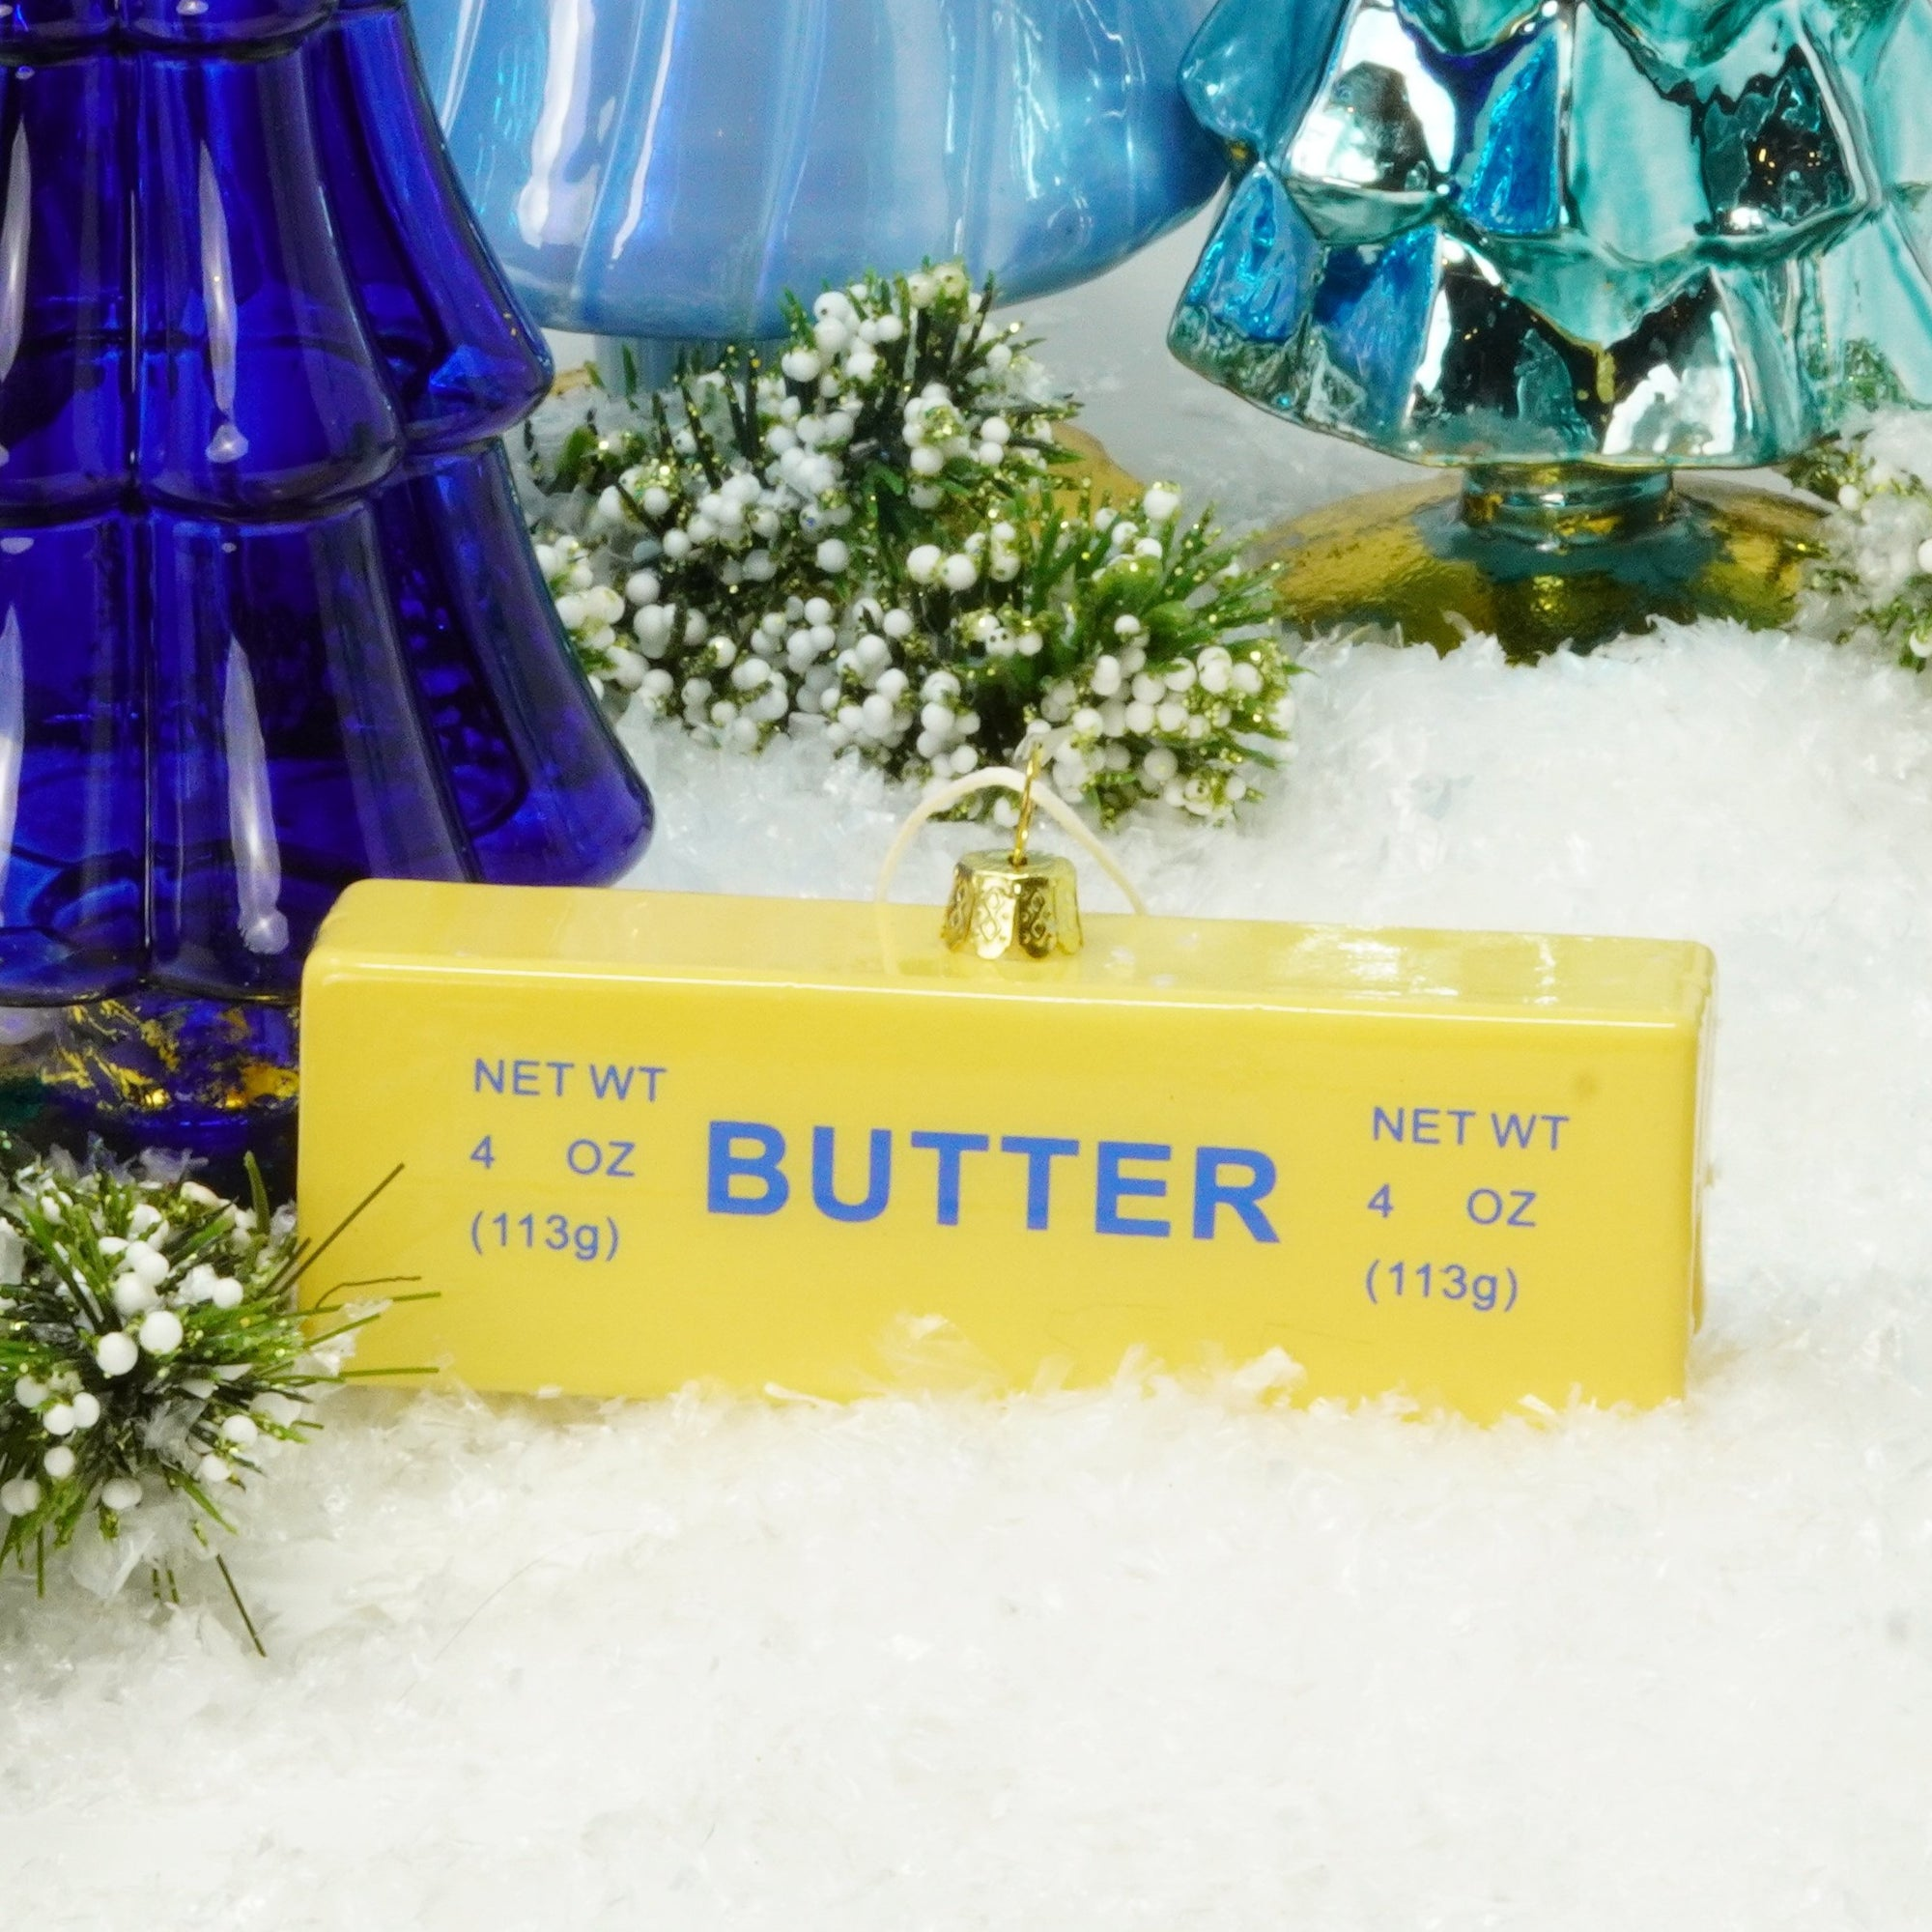 There is only one universal truth in life, and here it is: Everything is better with butter! You know we're right, which is why you're about to buy this clever little Stick of Butter Glass Christmas Ornament! It's the perfect stocking stuffer for the baker in your life, or for anyone who—like us—will sing butter's praises to the end of the earth!